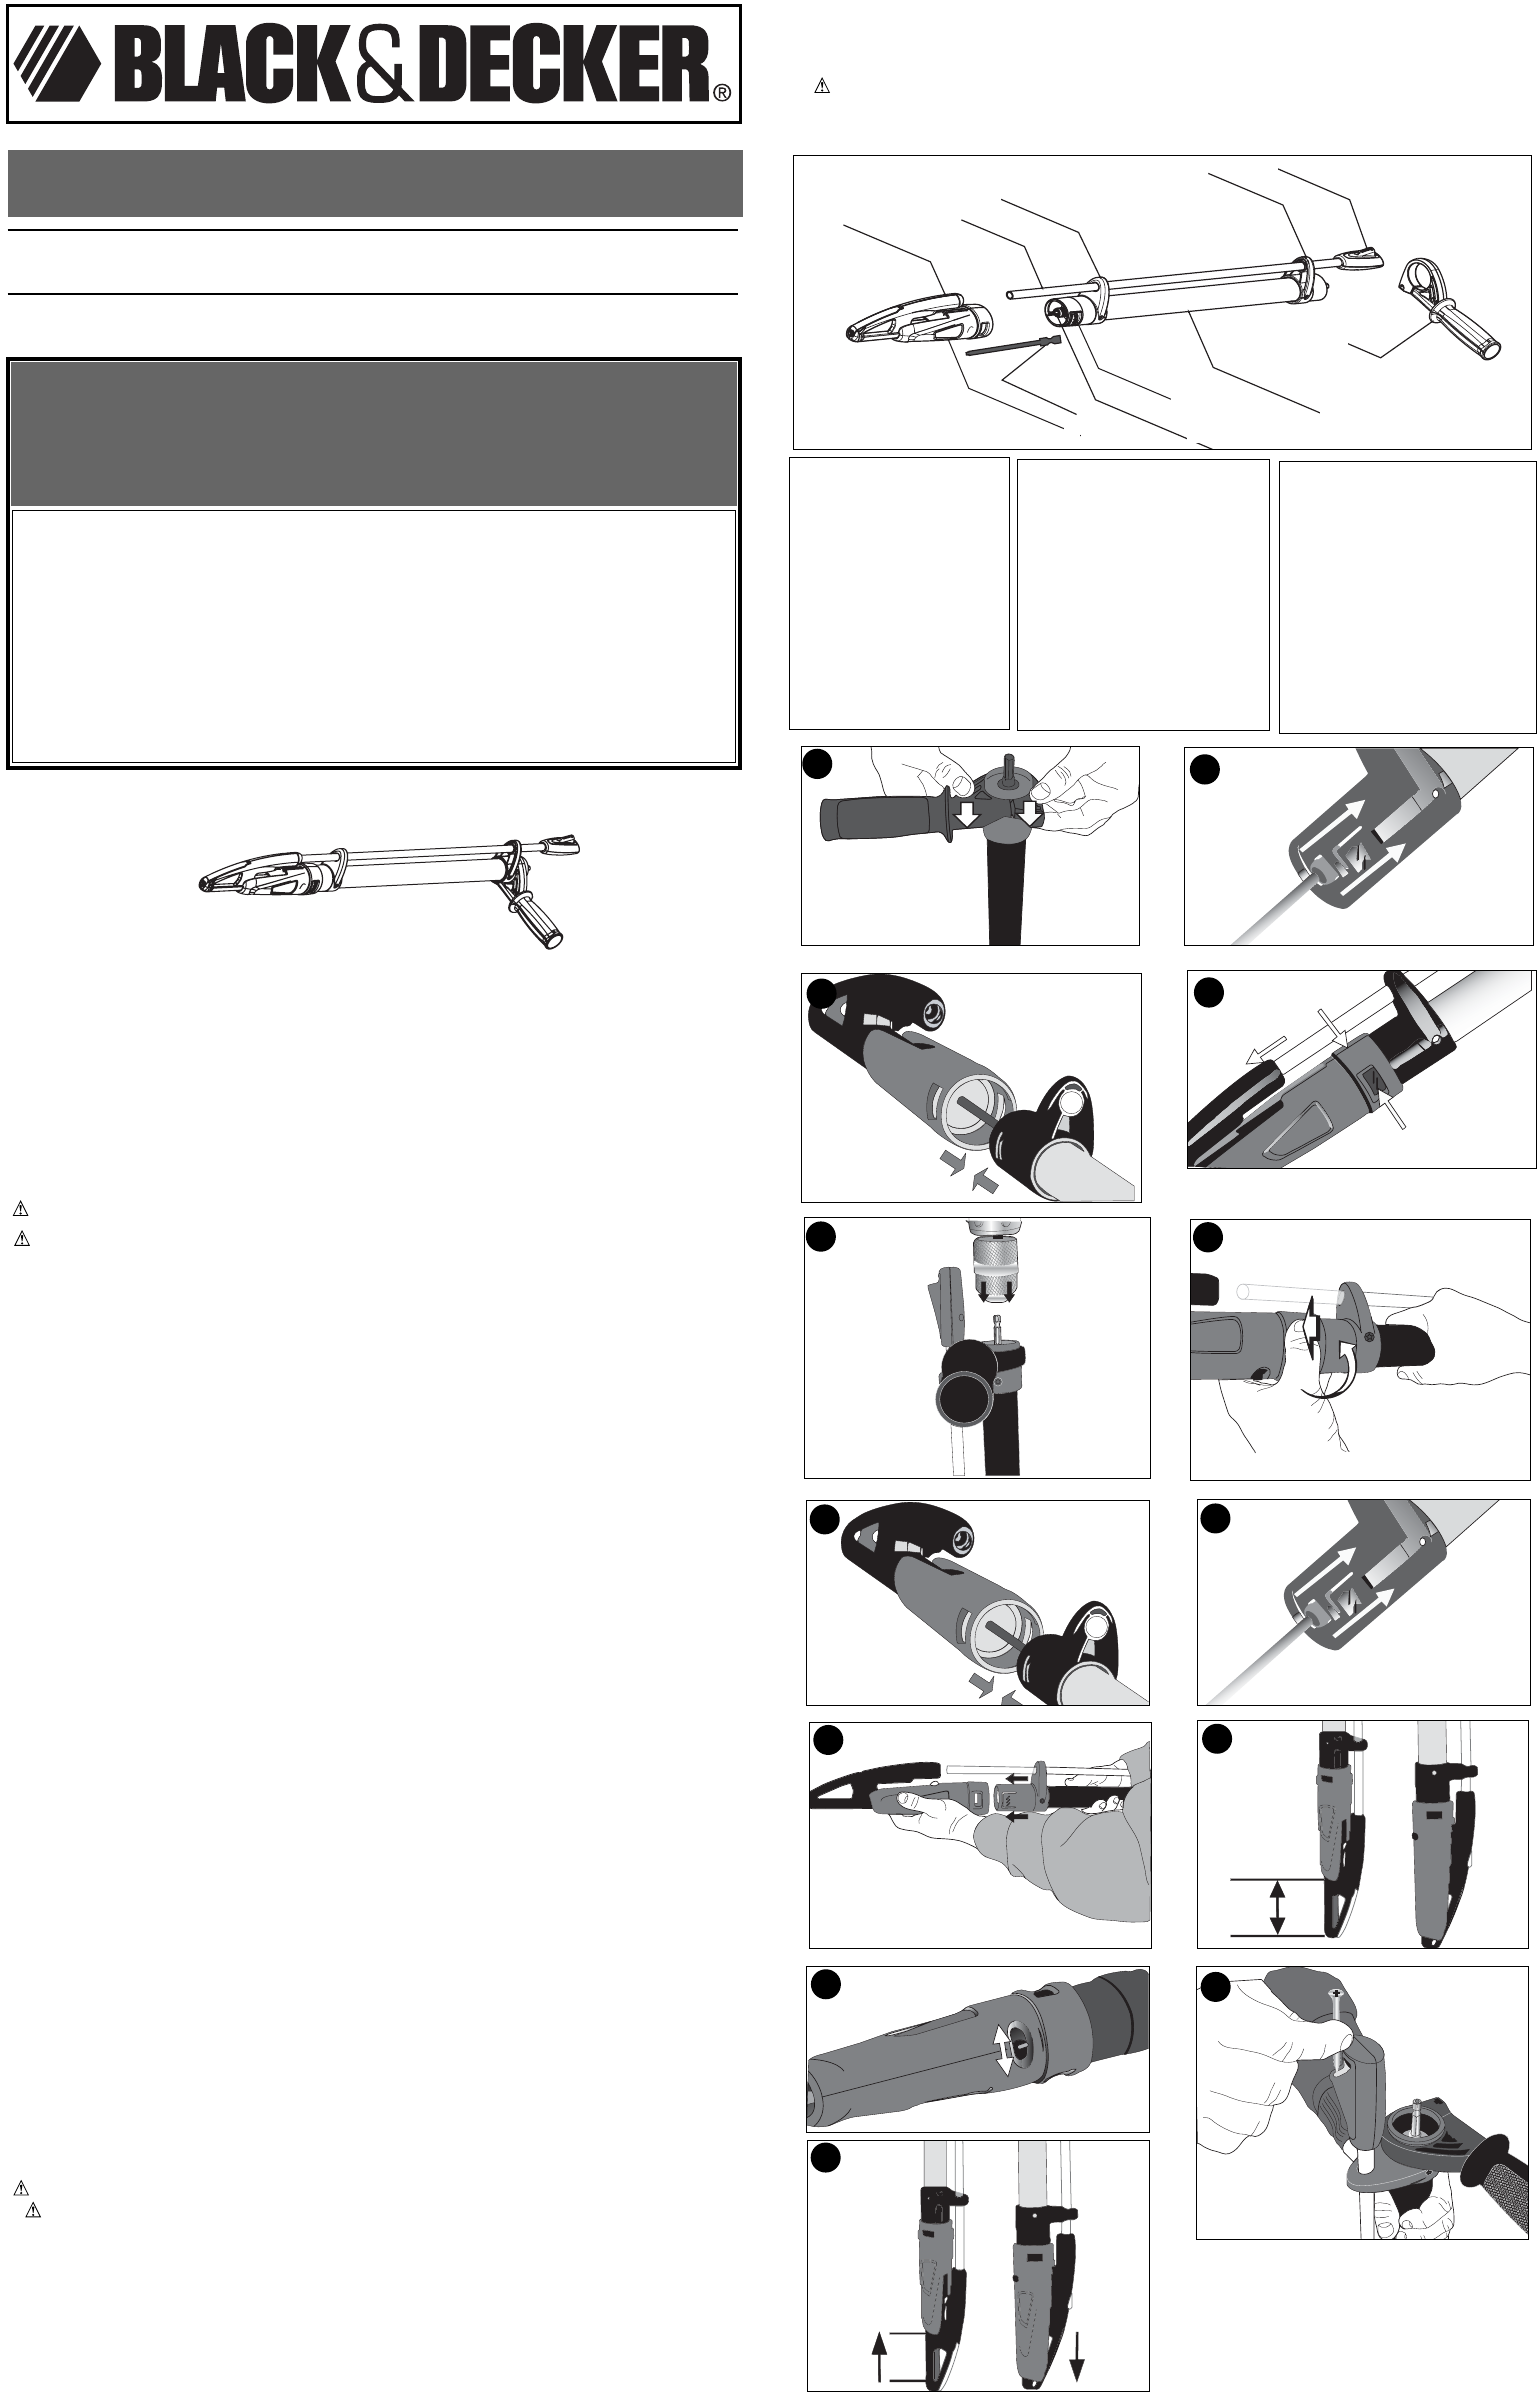 299302da 0213 459f bffc 3a9f44e20949 bg1 black & decker power screwdriver fs100sf user guide black and decker bench grinder wiring diagram at panicattacktreatment.co